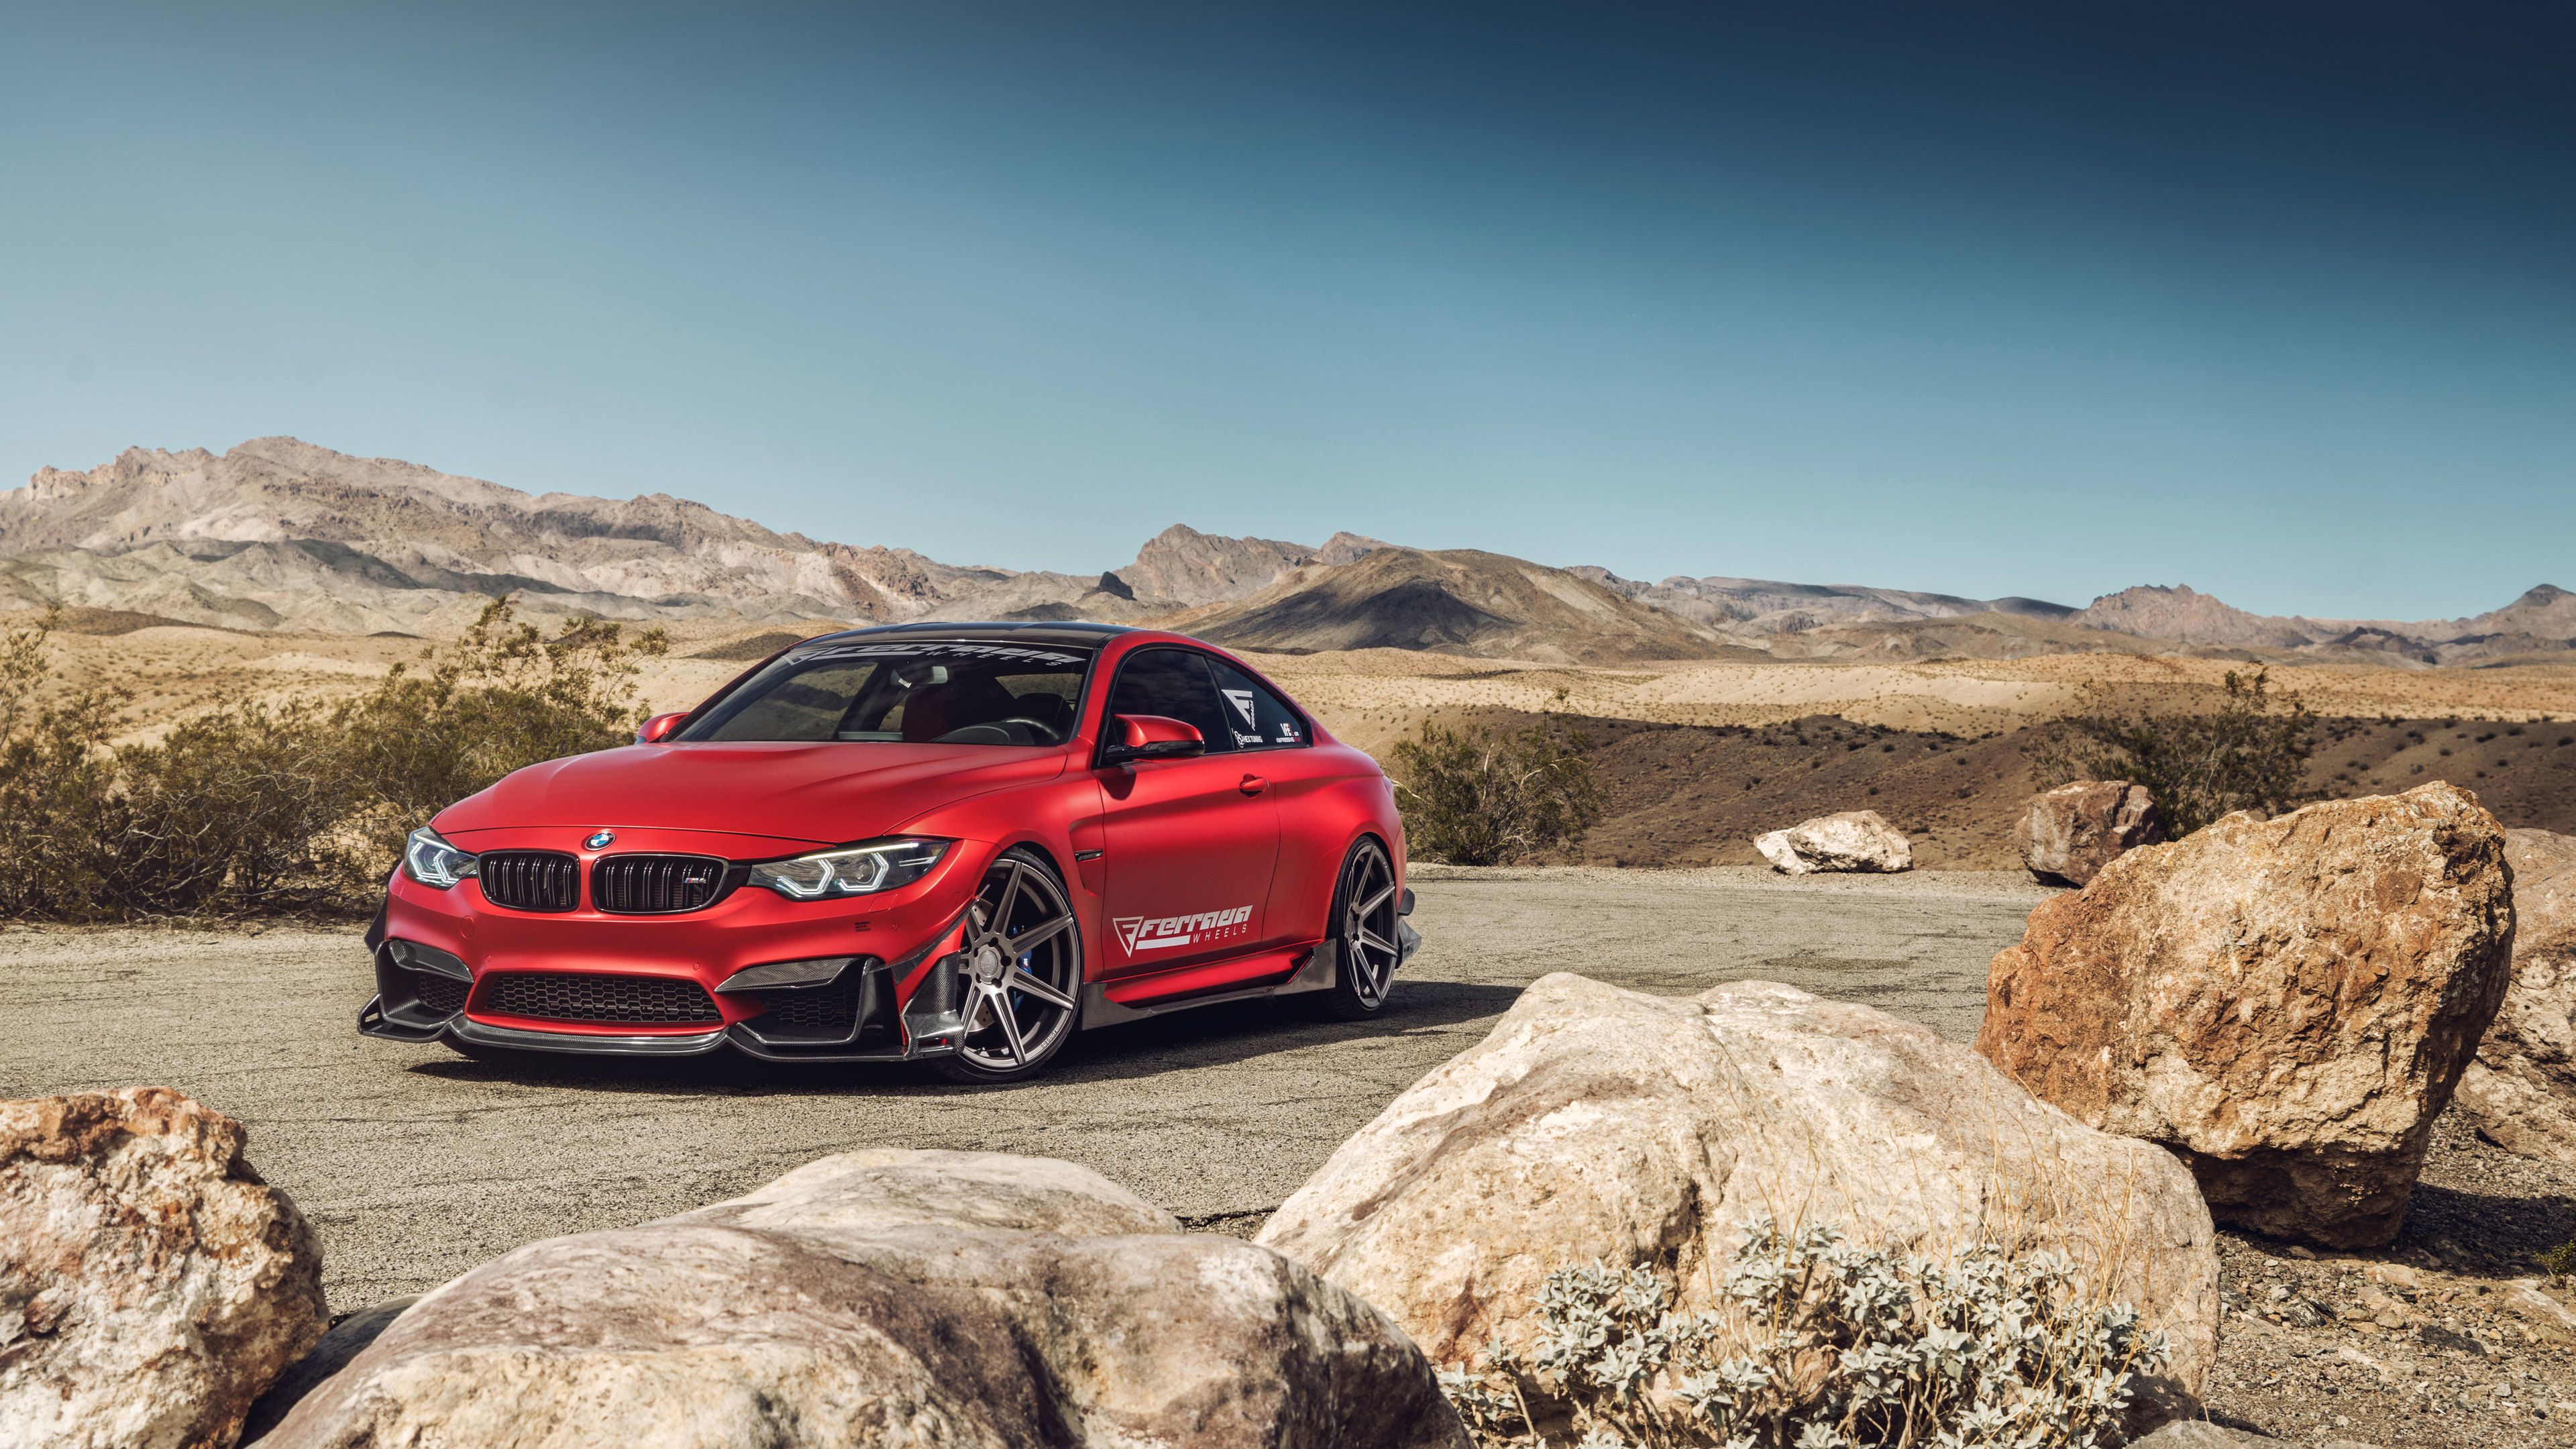 Wallpaper 4k Bmw M4 Ferrada Wheels 8k 4k Wallpapers 5k Wallpapers